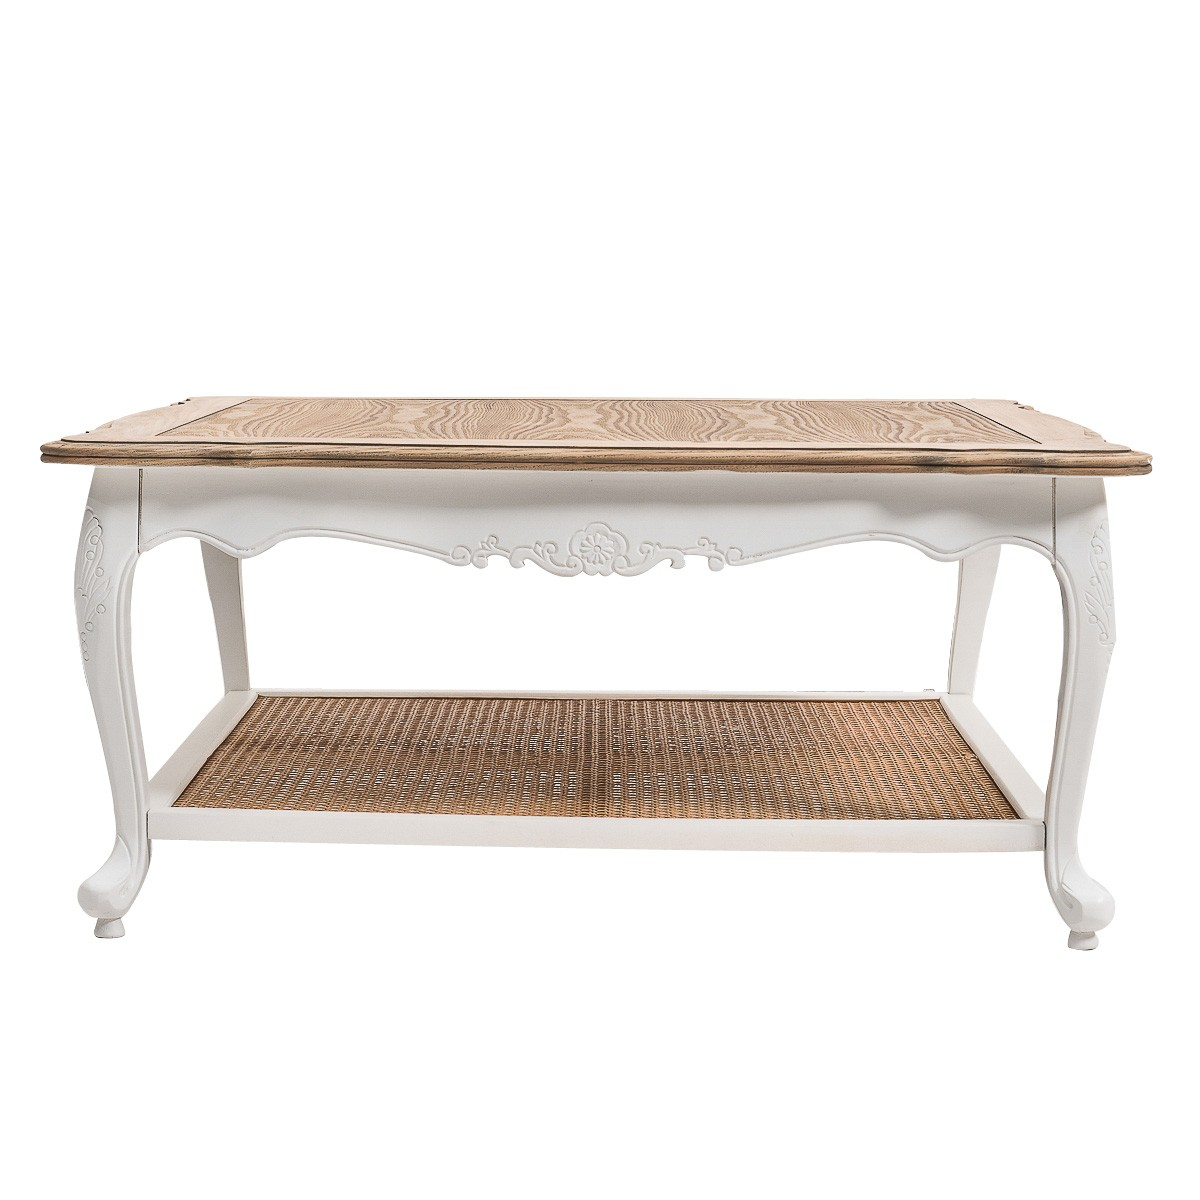 Hamptons French Coffee Table: French Provincial Furniture Square Coffee & Tea Table In